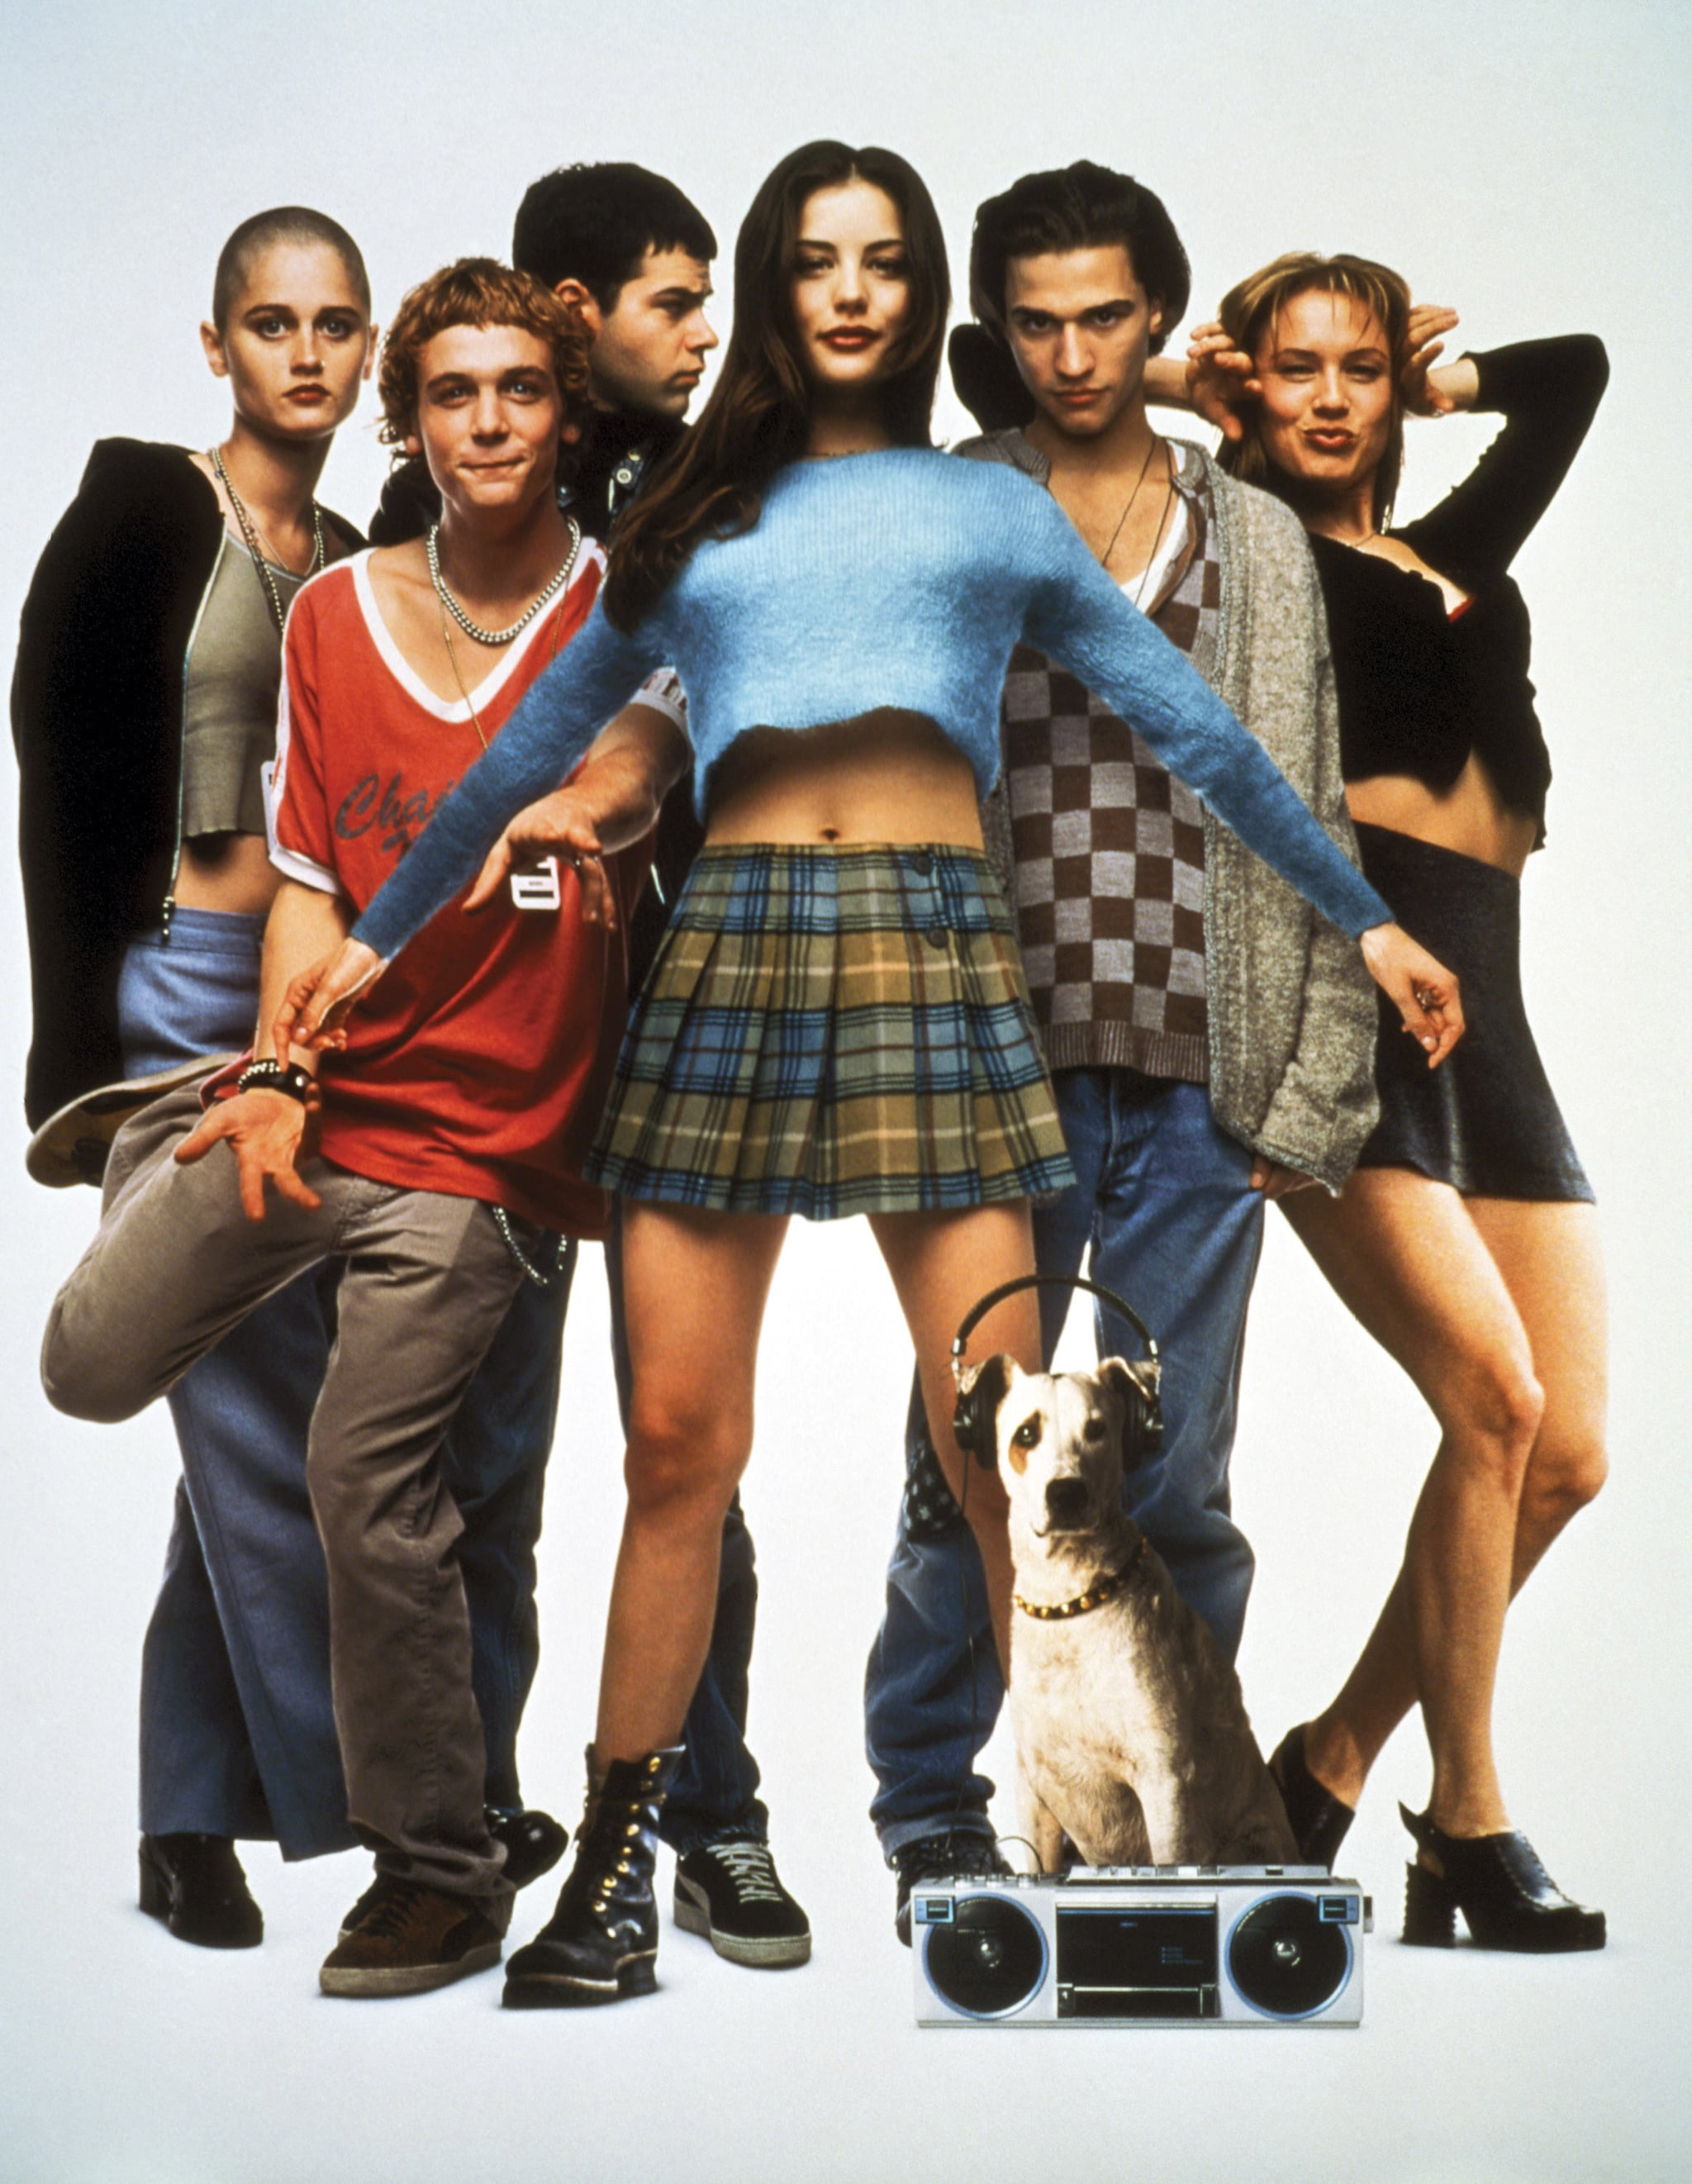 EMPIRE RECORDS, Robin Tunney, Ethan Randall, Rory Cochrane, Liv Tyler, Johnny Whitworth, Renee Zellweger, 1995, (c) Warner Brothers/courtesy Everett Collection